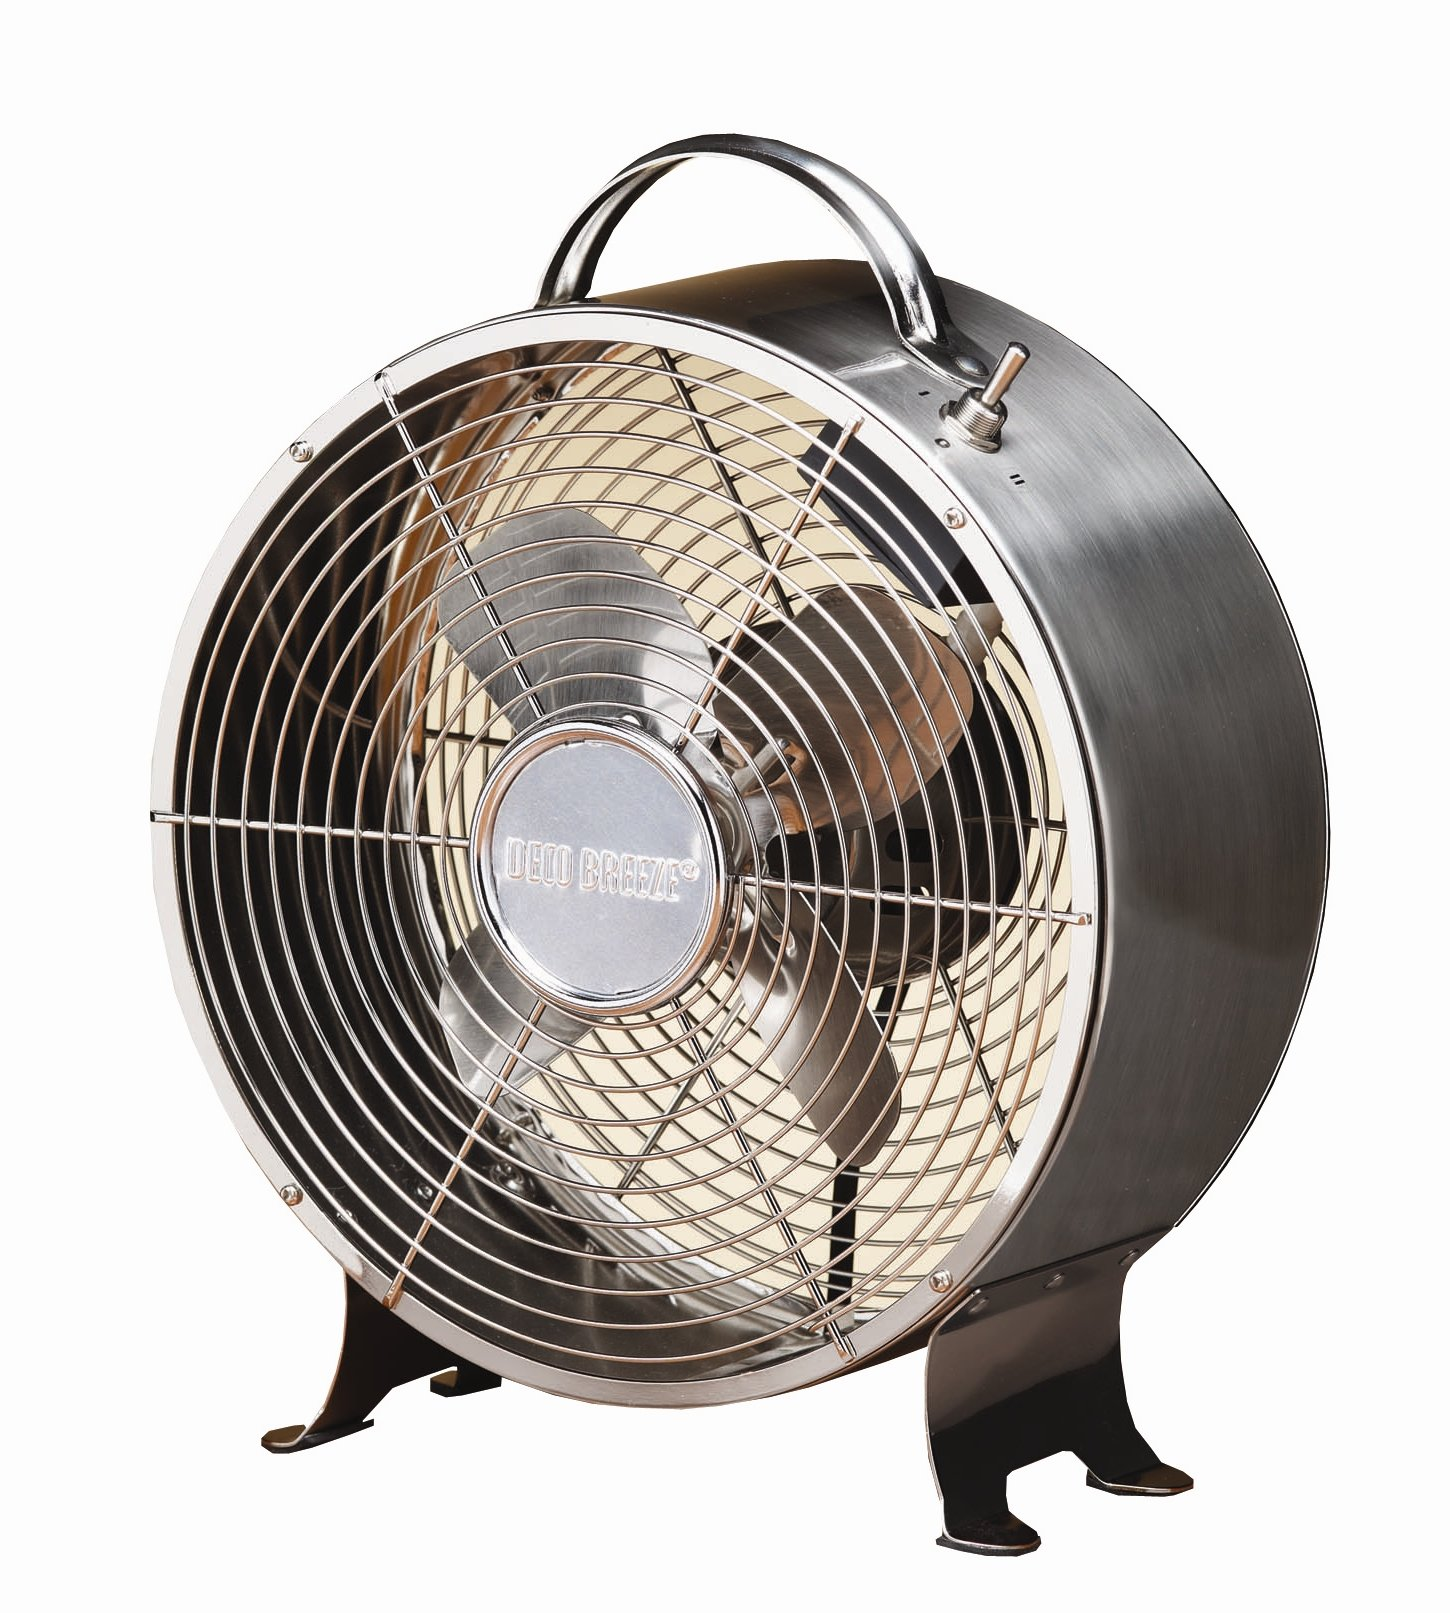 Deco Breeze Round Retro Table Fan, Stainless Steel, 12-1/2-Inch by 10-Inch